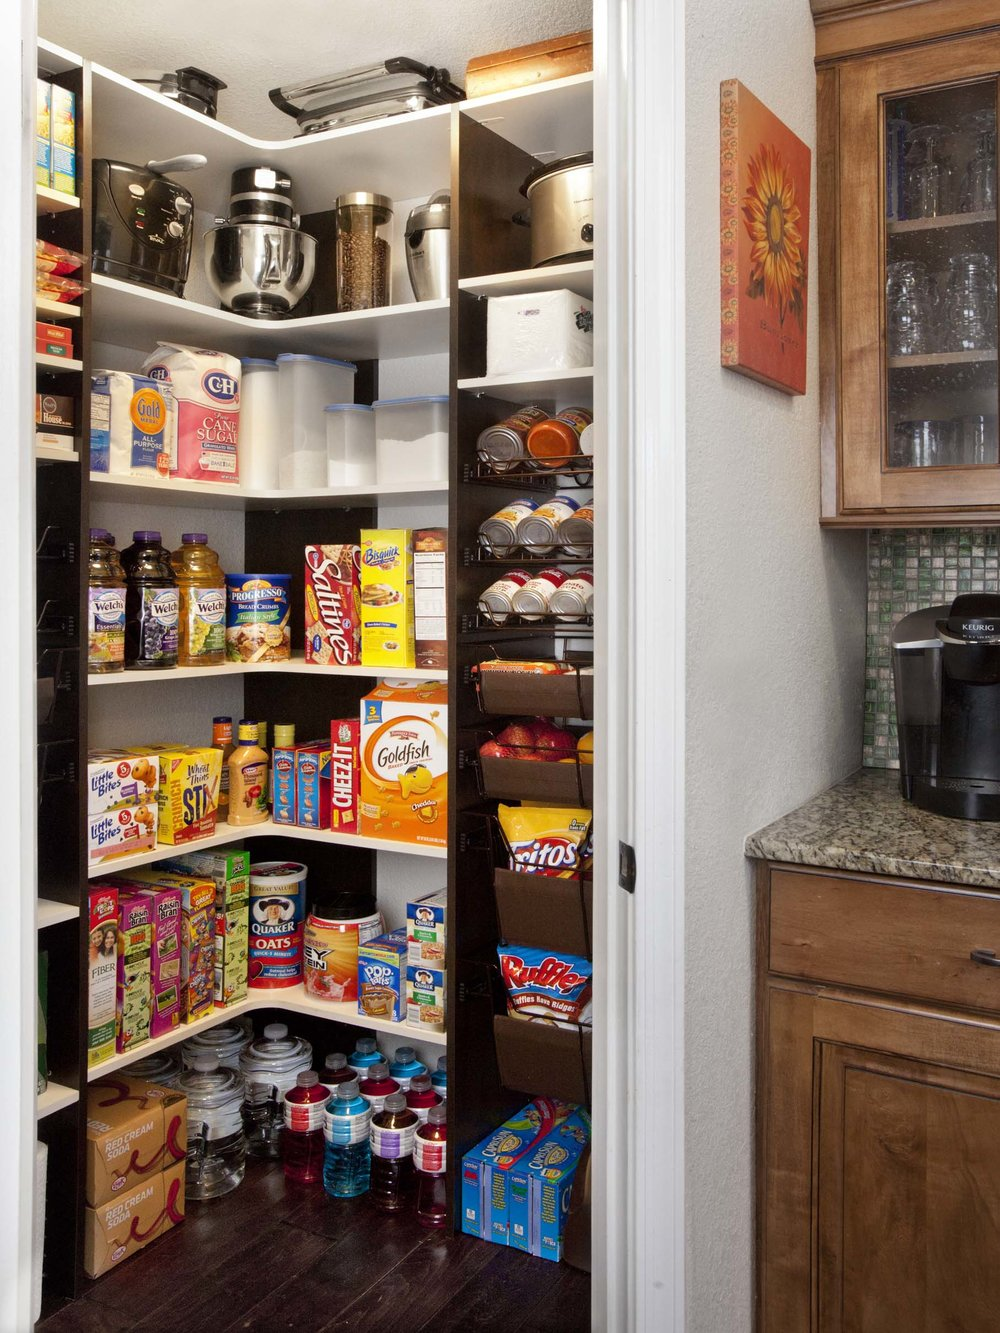 White Corner Shelf Pantry with Chocolate Pear Side Panels-Eric 2012.jpg